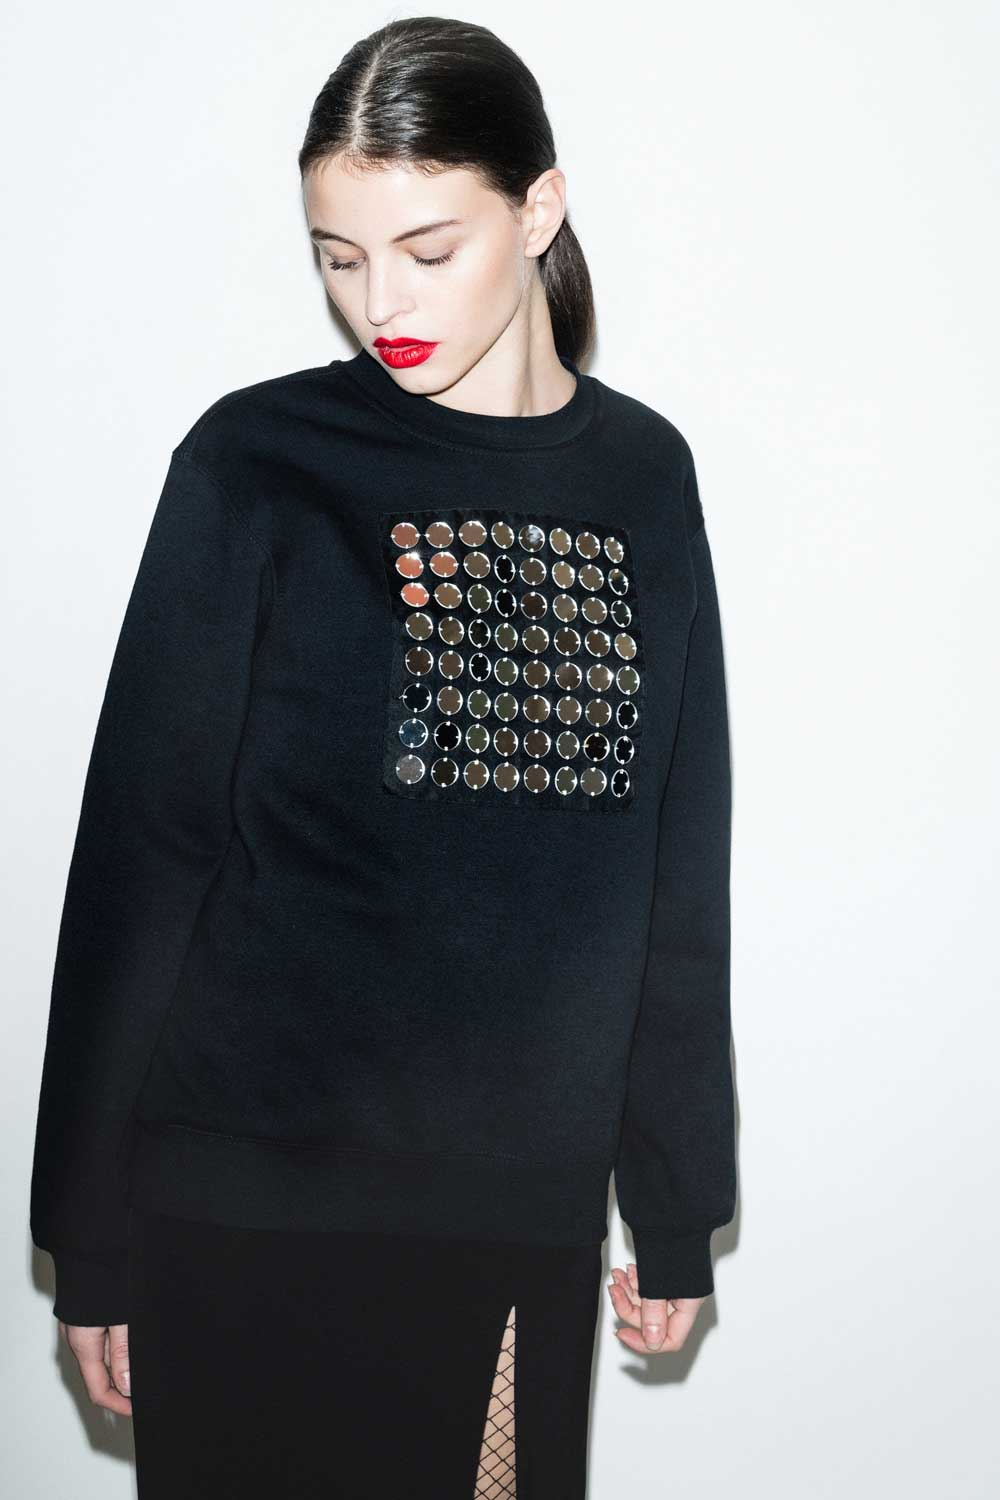 fflag-sweatshirt-ornement-miroir-broderie-couture-4